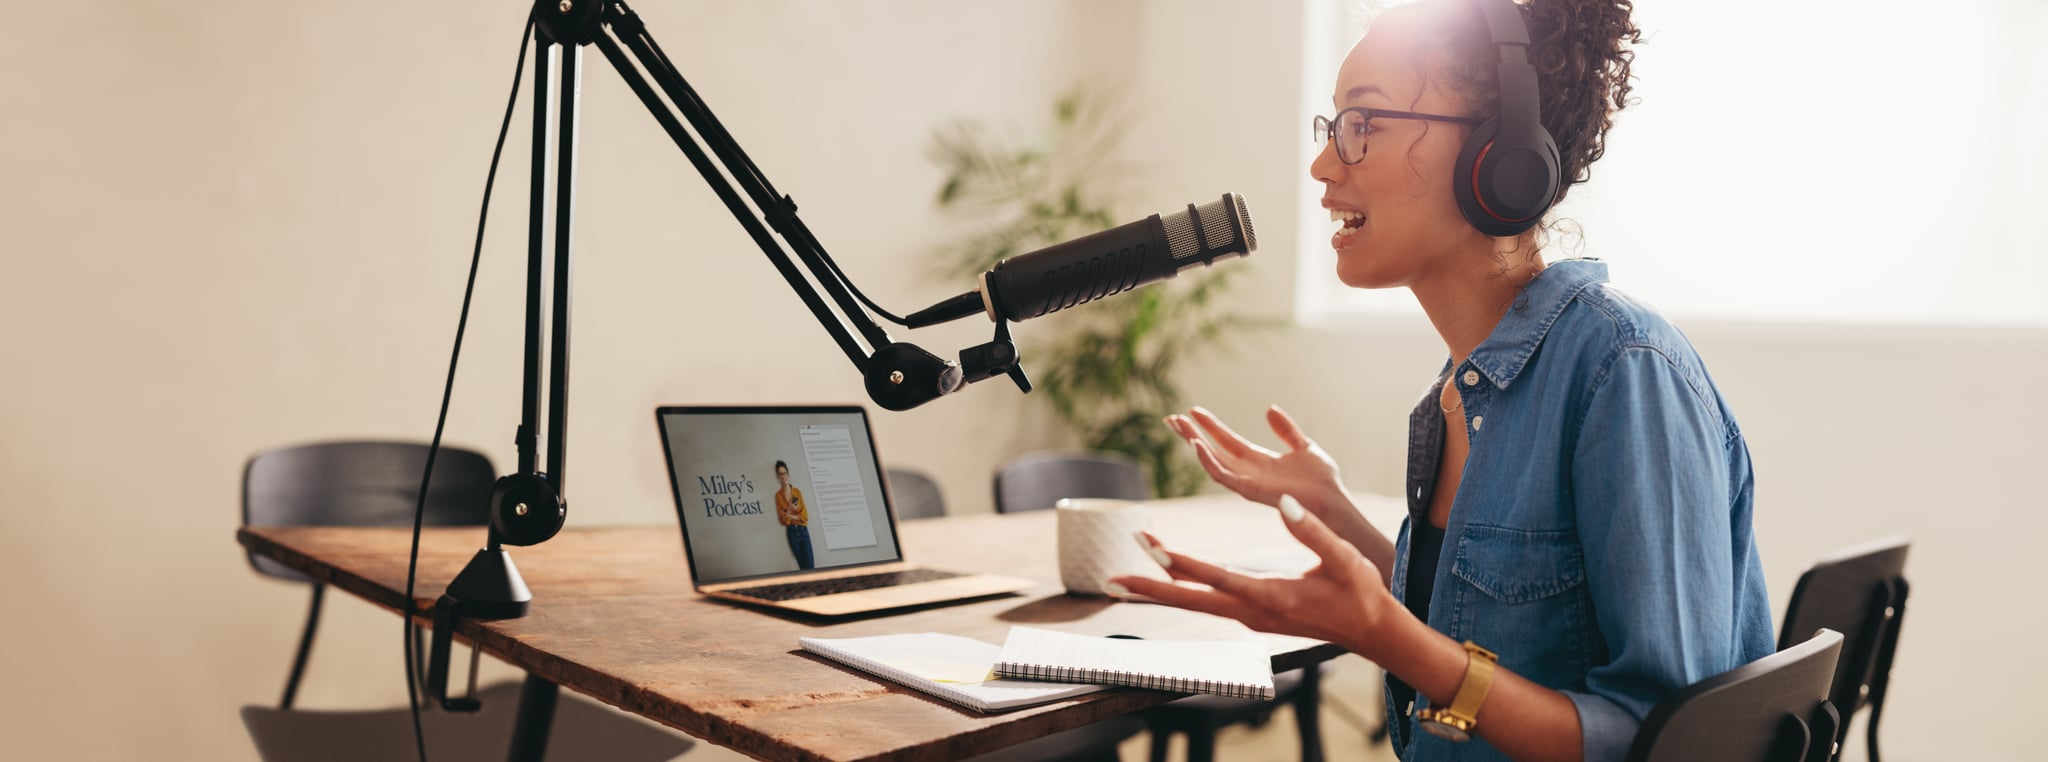 Female broadcasting her podcast from home. Woman wearing headphones talking into a microphone while working from home.